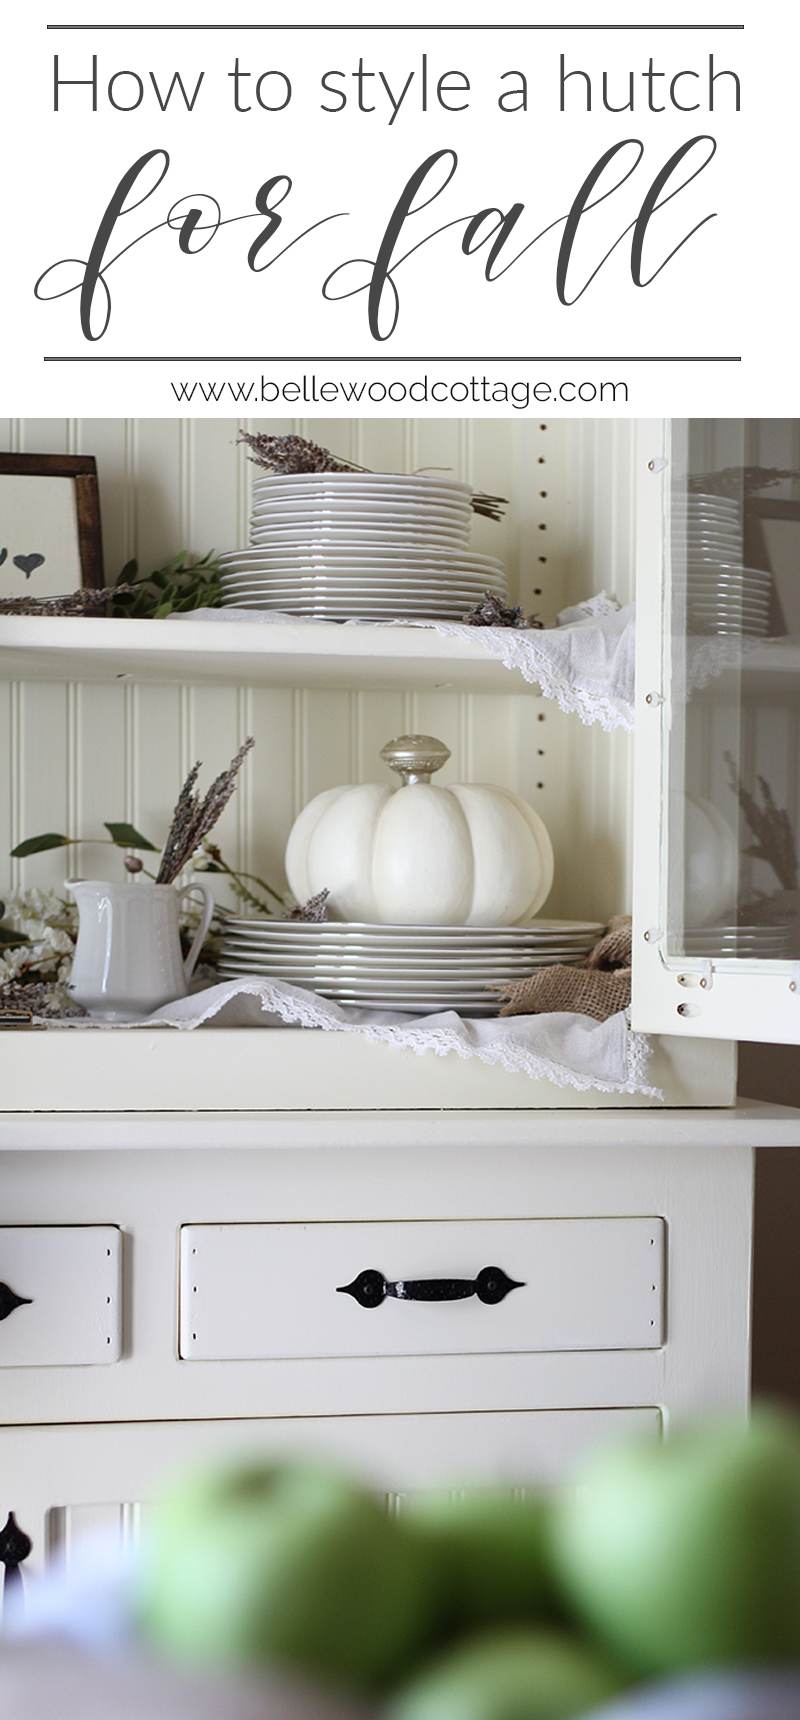 Learn how to maximize your decorating budget and use the decor you already own to style a beautiful fall farmhouse hutch!